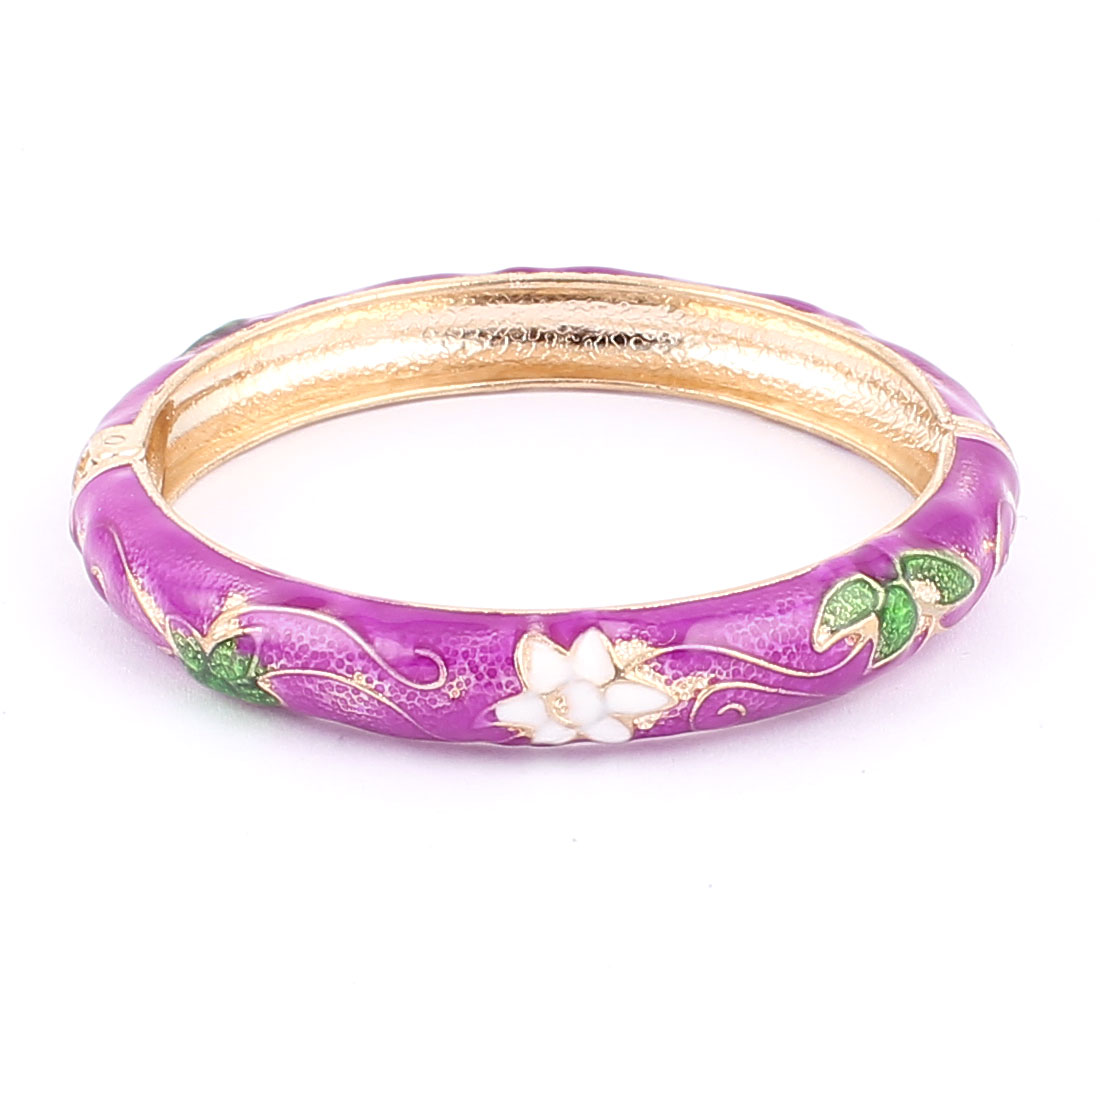 Woman Lady Spring Hinged Round Cuff Flower Carved Enamel Bracelet Bangle Fuchsia